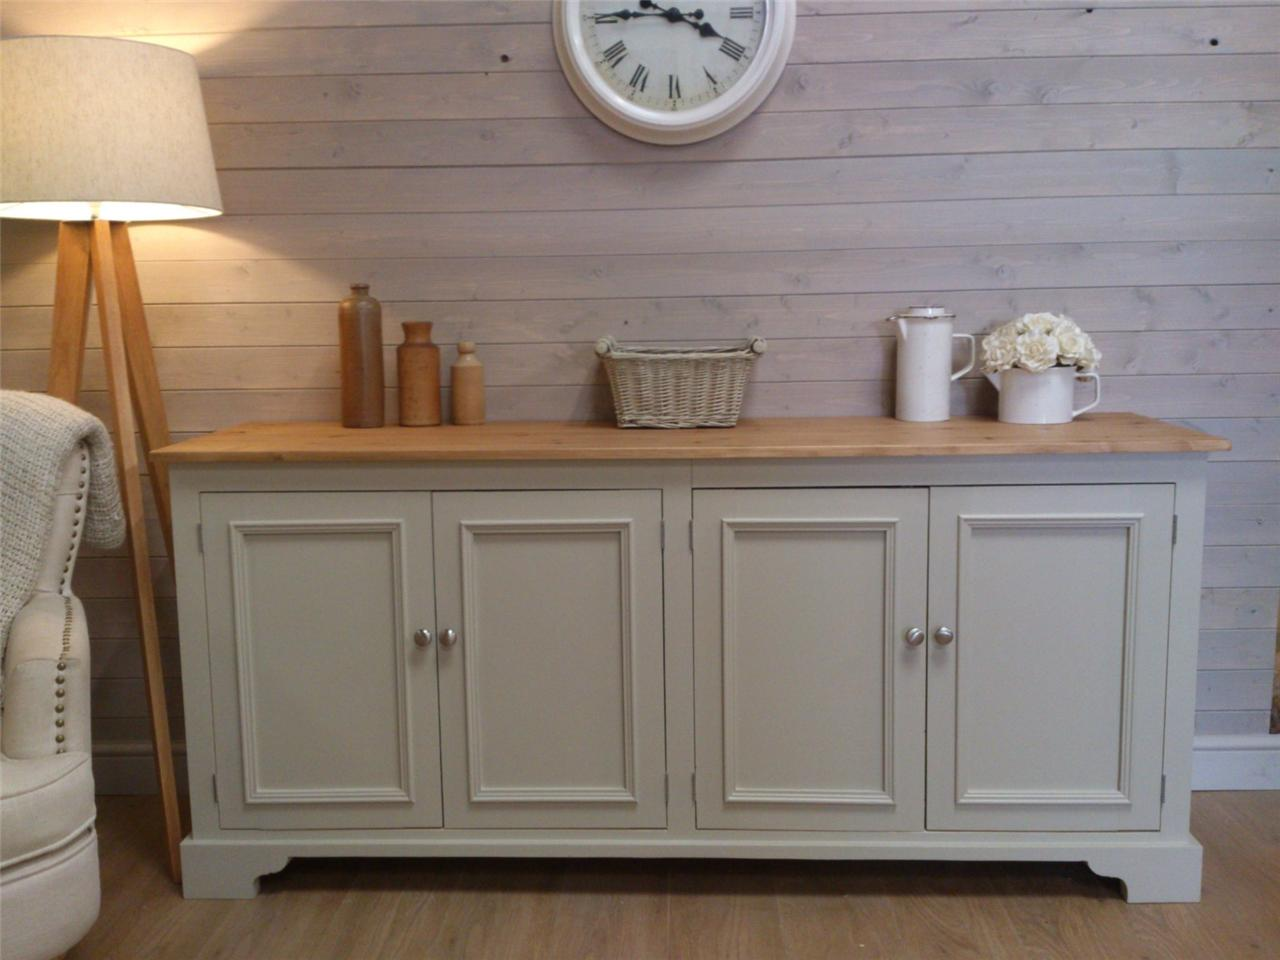 new huge solid pine sideboard kitchen unit shabby chic painted furniture f ball ebay. Black Bedroom Furniture Sets. Home Design Ideas